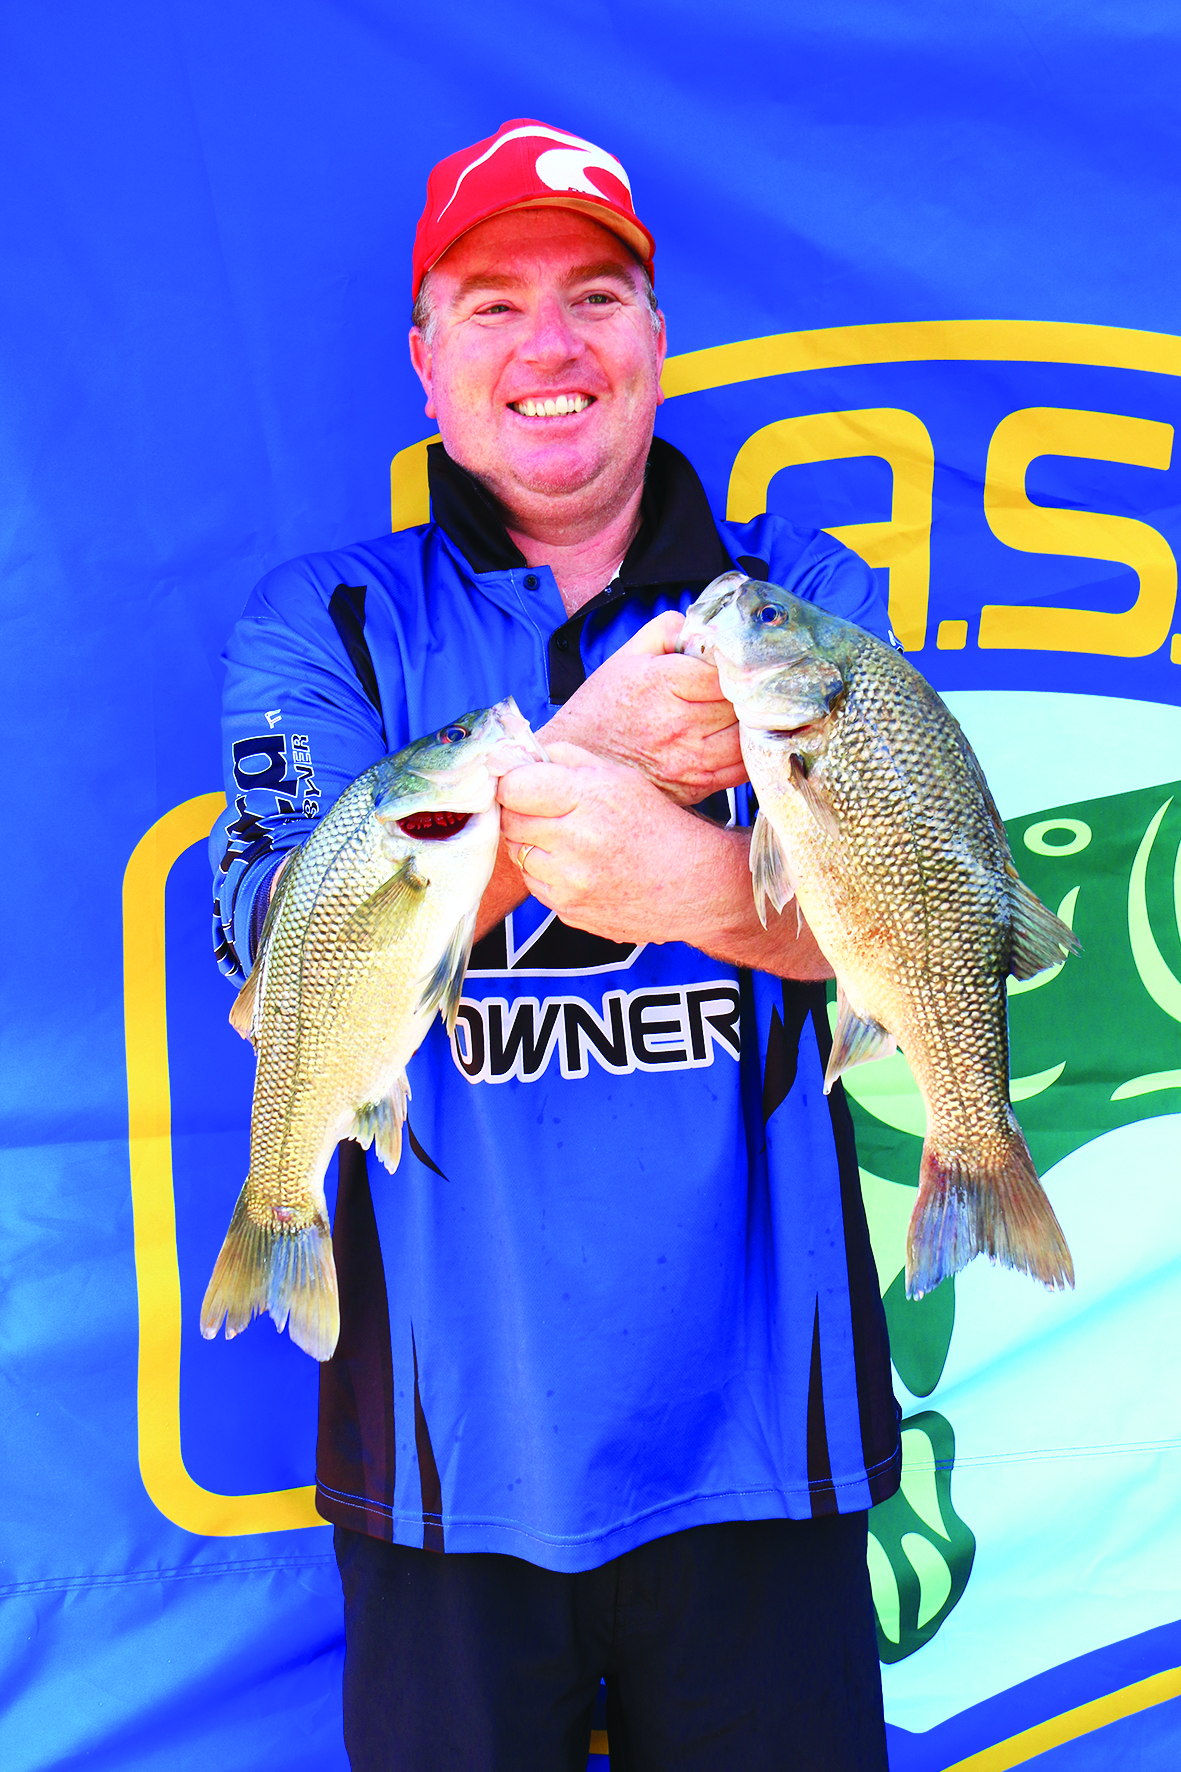 Micheal O'Dowd placed second in the Co-Angler division.